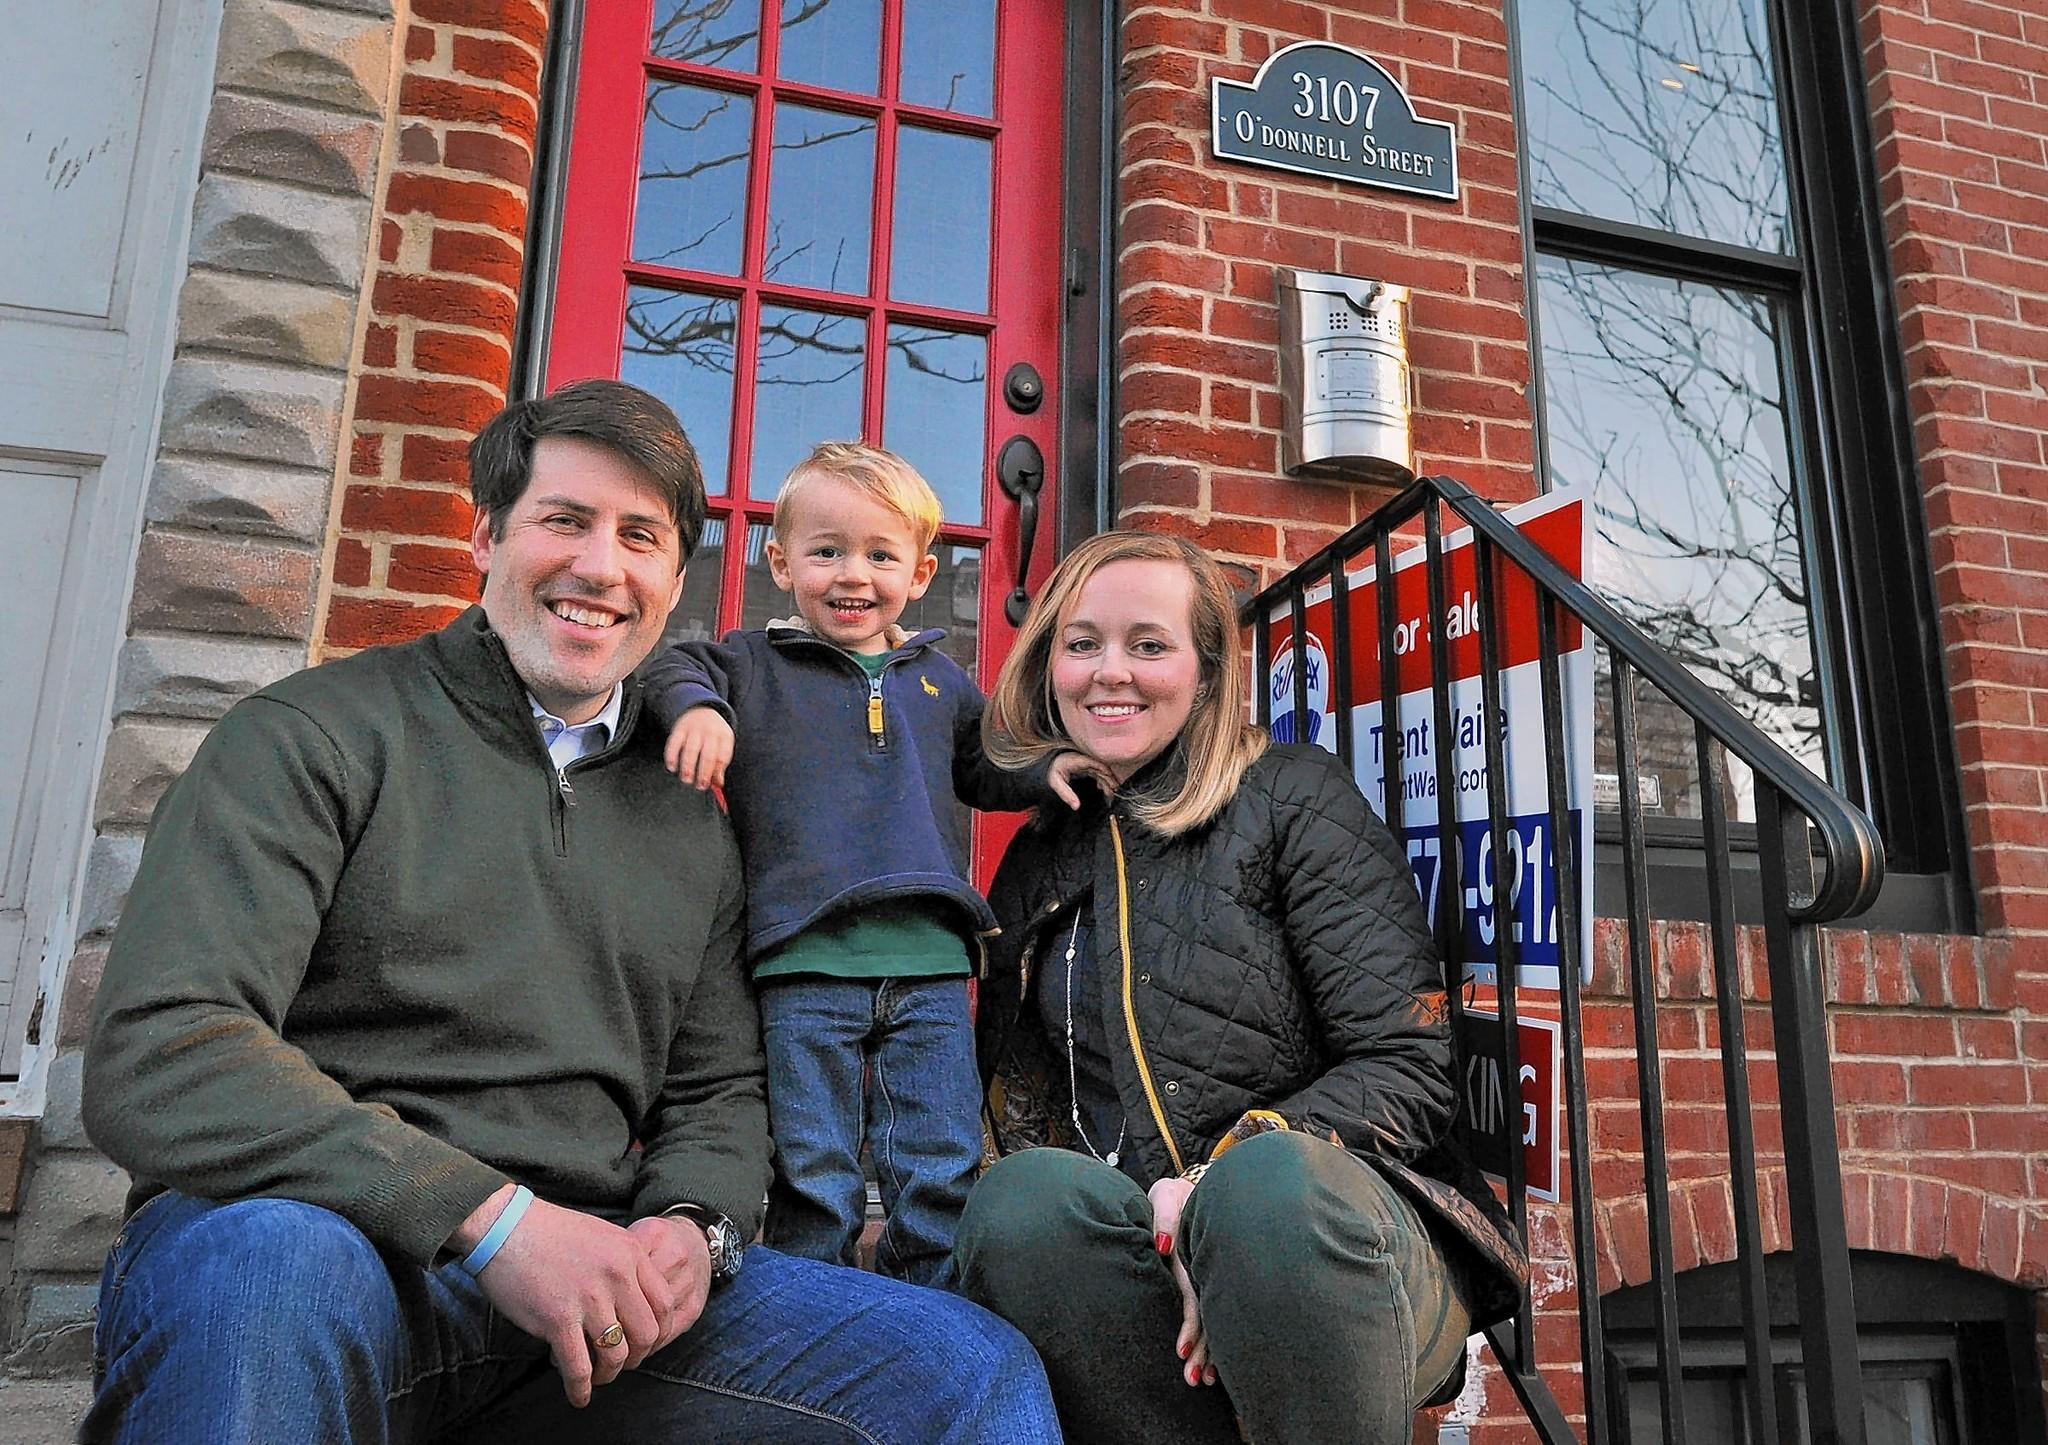 Jake and Stephanie Martin, with their son Max, 2 1/2, at their O'Donnell Street rowhouse in Canton, which sold in three days. Low inventory helped them to sell, but made it harder to find a new home. Through a friend, they found a larger house in Homeland that never went on the market.